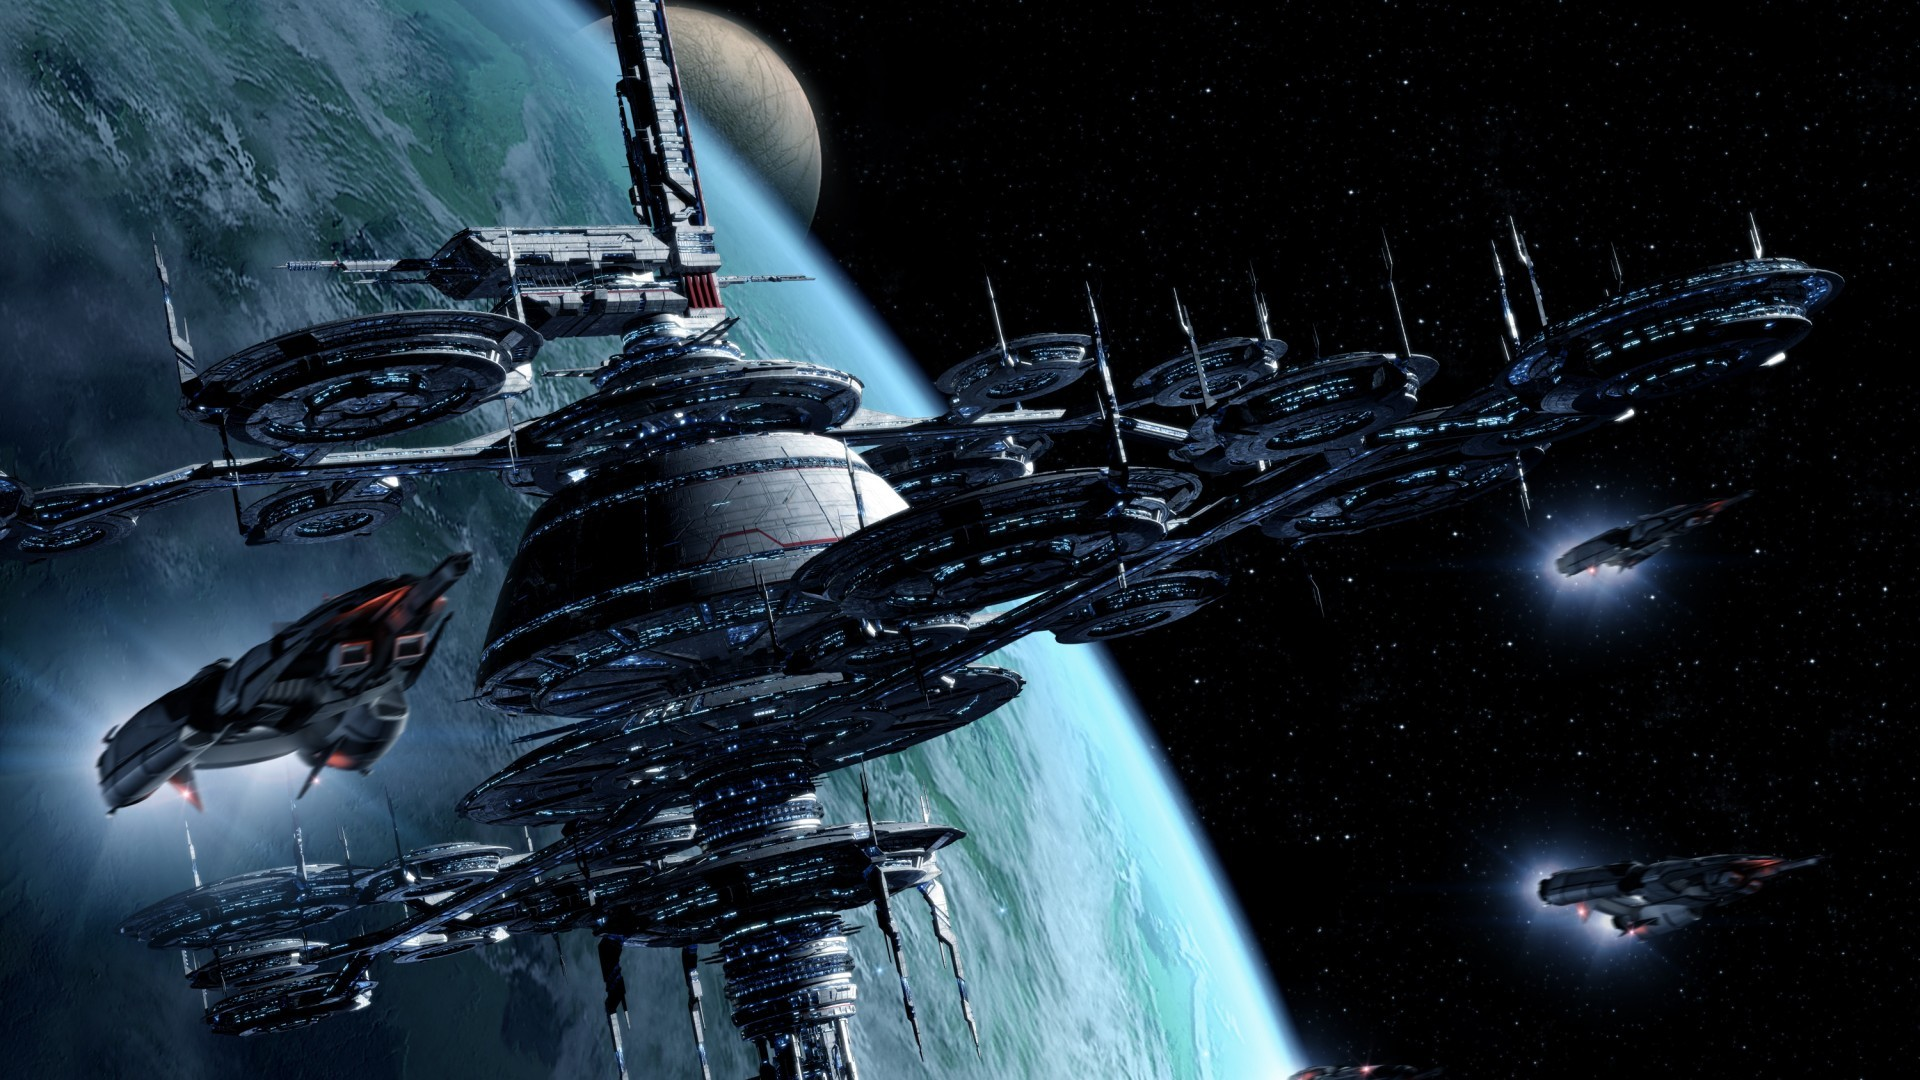 science fiction atlantis space base - photo #15